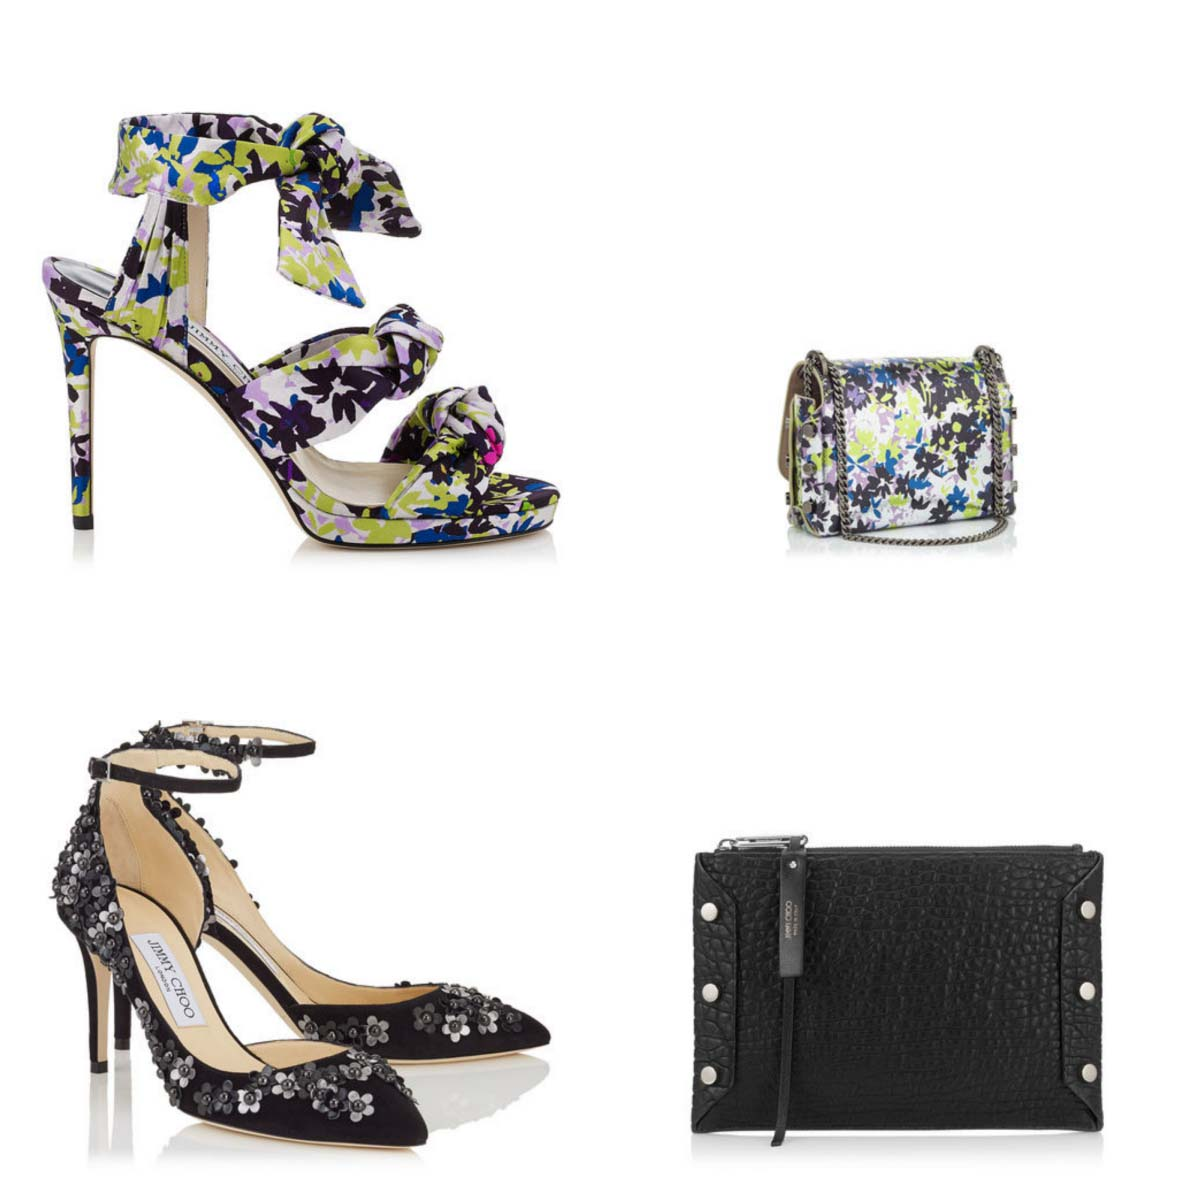 Jimmy Choo Latest Shoes and Handbags Collection 2017-2018 (9)